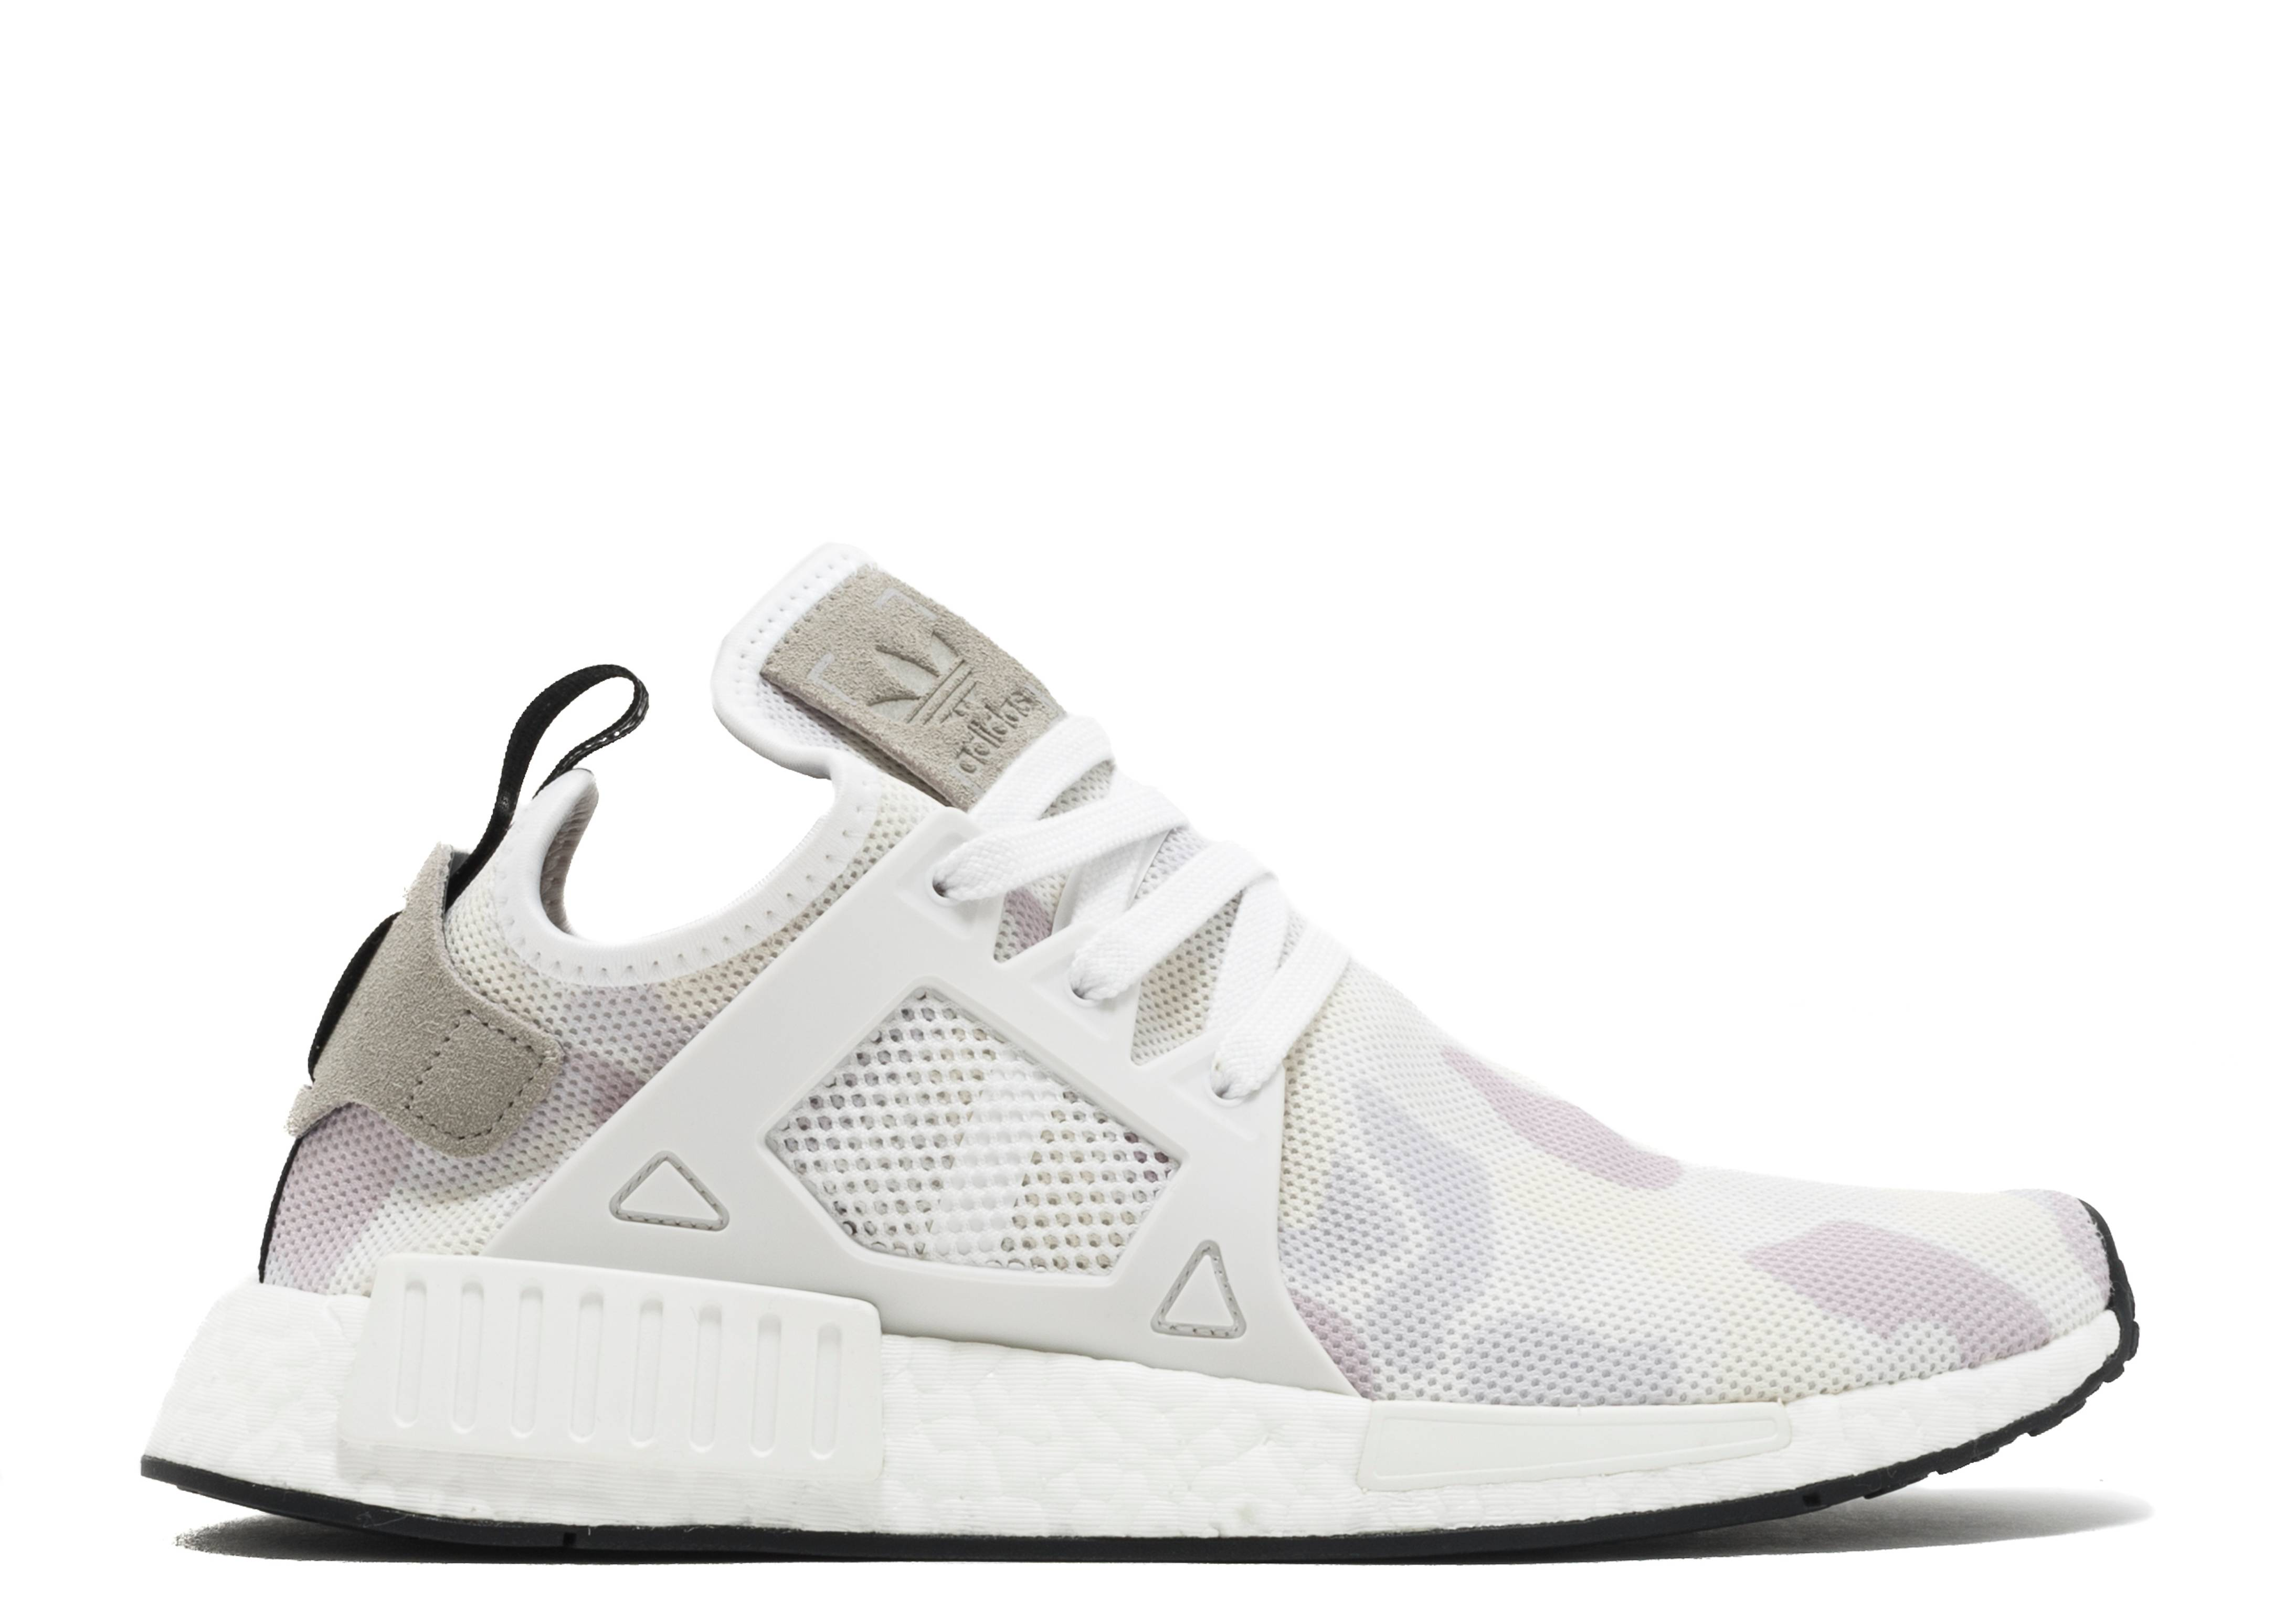 The Cheap Adidas NMD just got a upgrade by Bedwin & the Heartbreakers